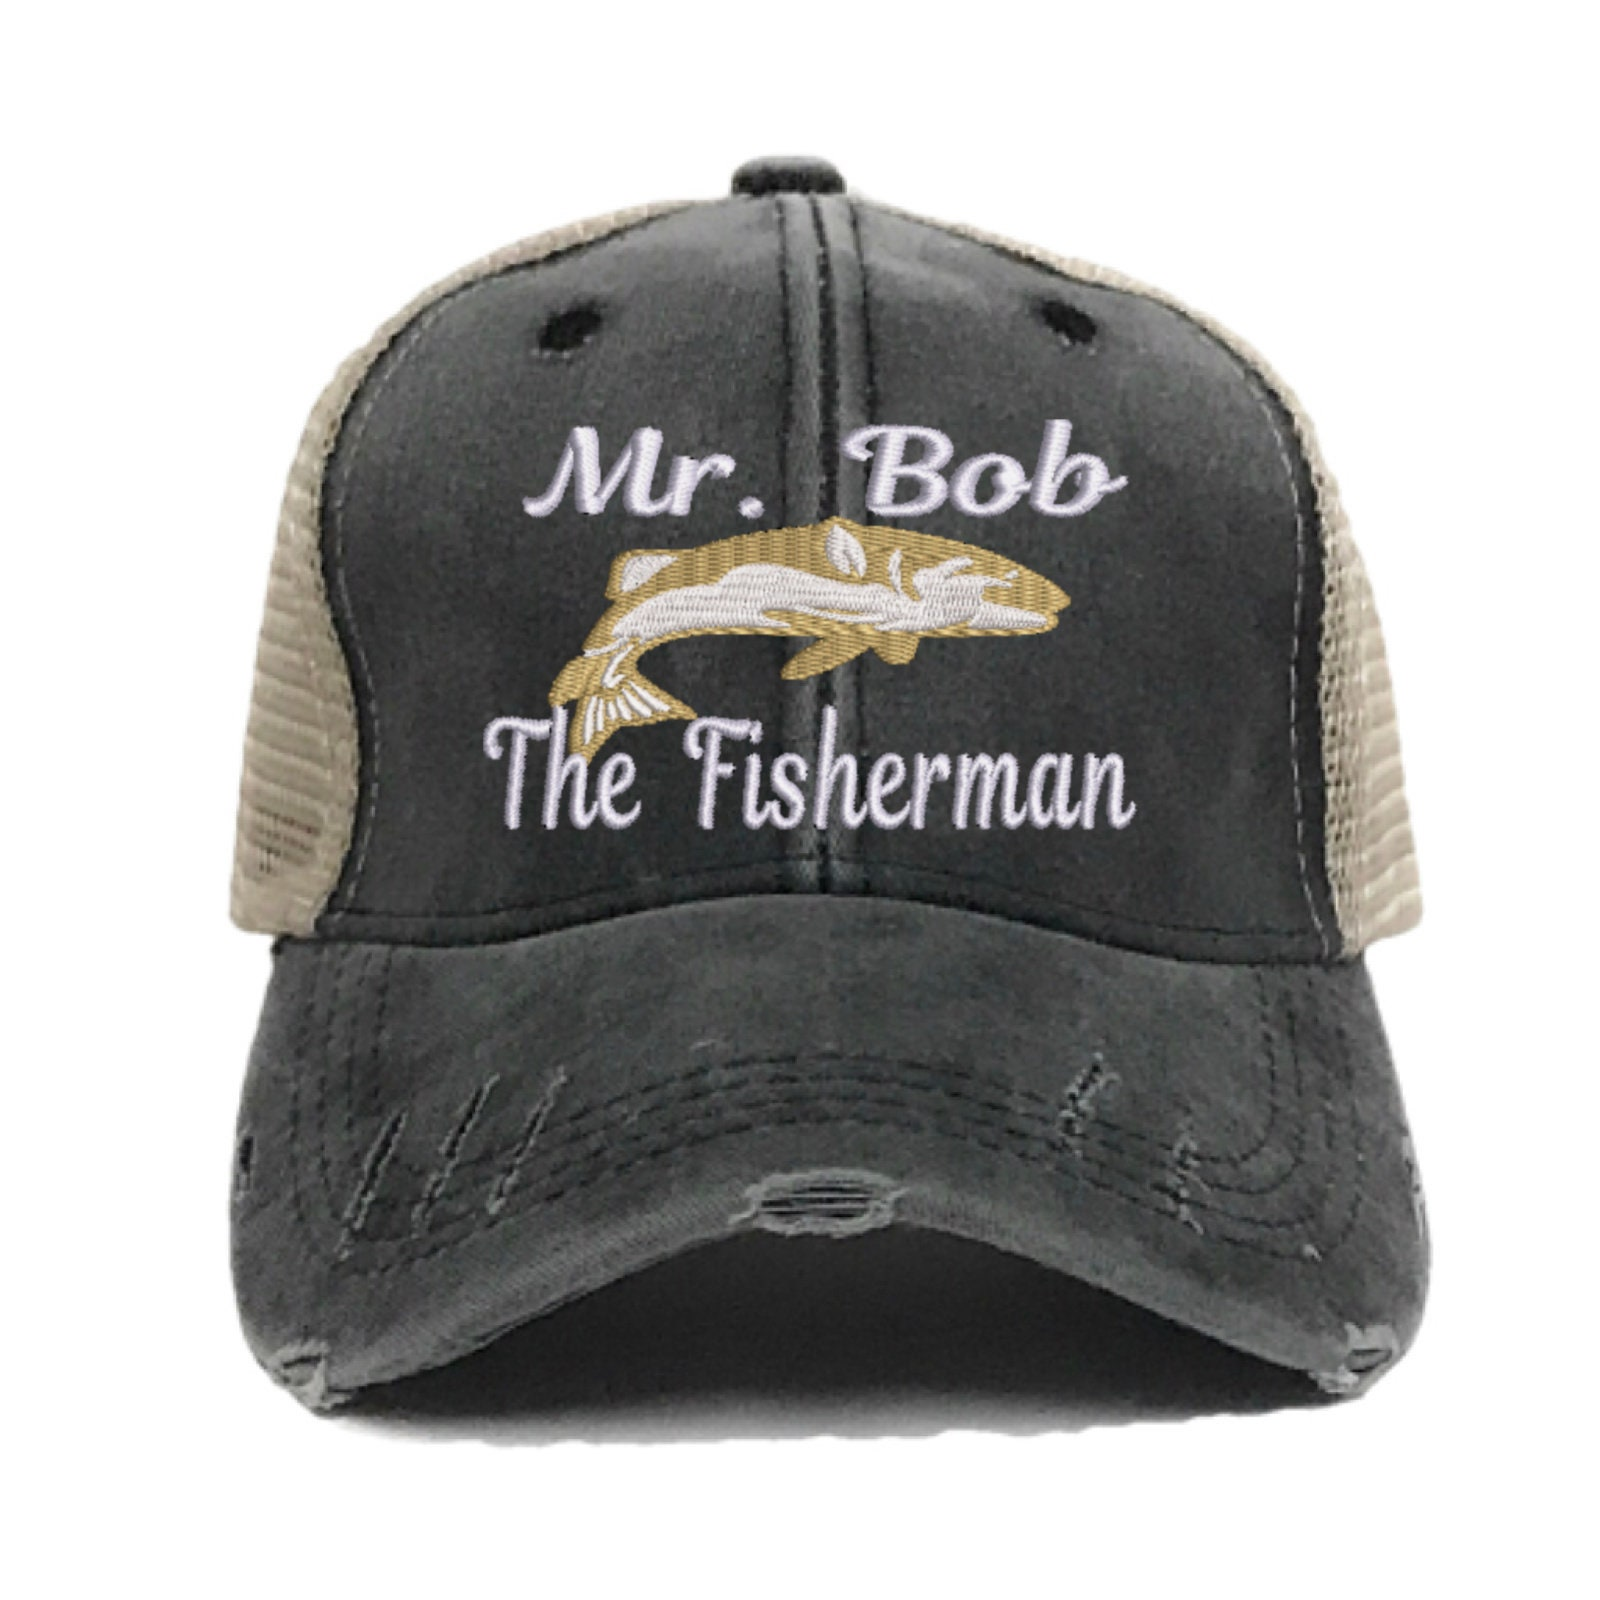 105f81552 Mr. Bob (Your Name) The Fisherman - Custom Distressed Trucker Hat -  Embroidered Fishing Hat - Baseball Cap - Design Your Own - Personalize